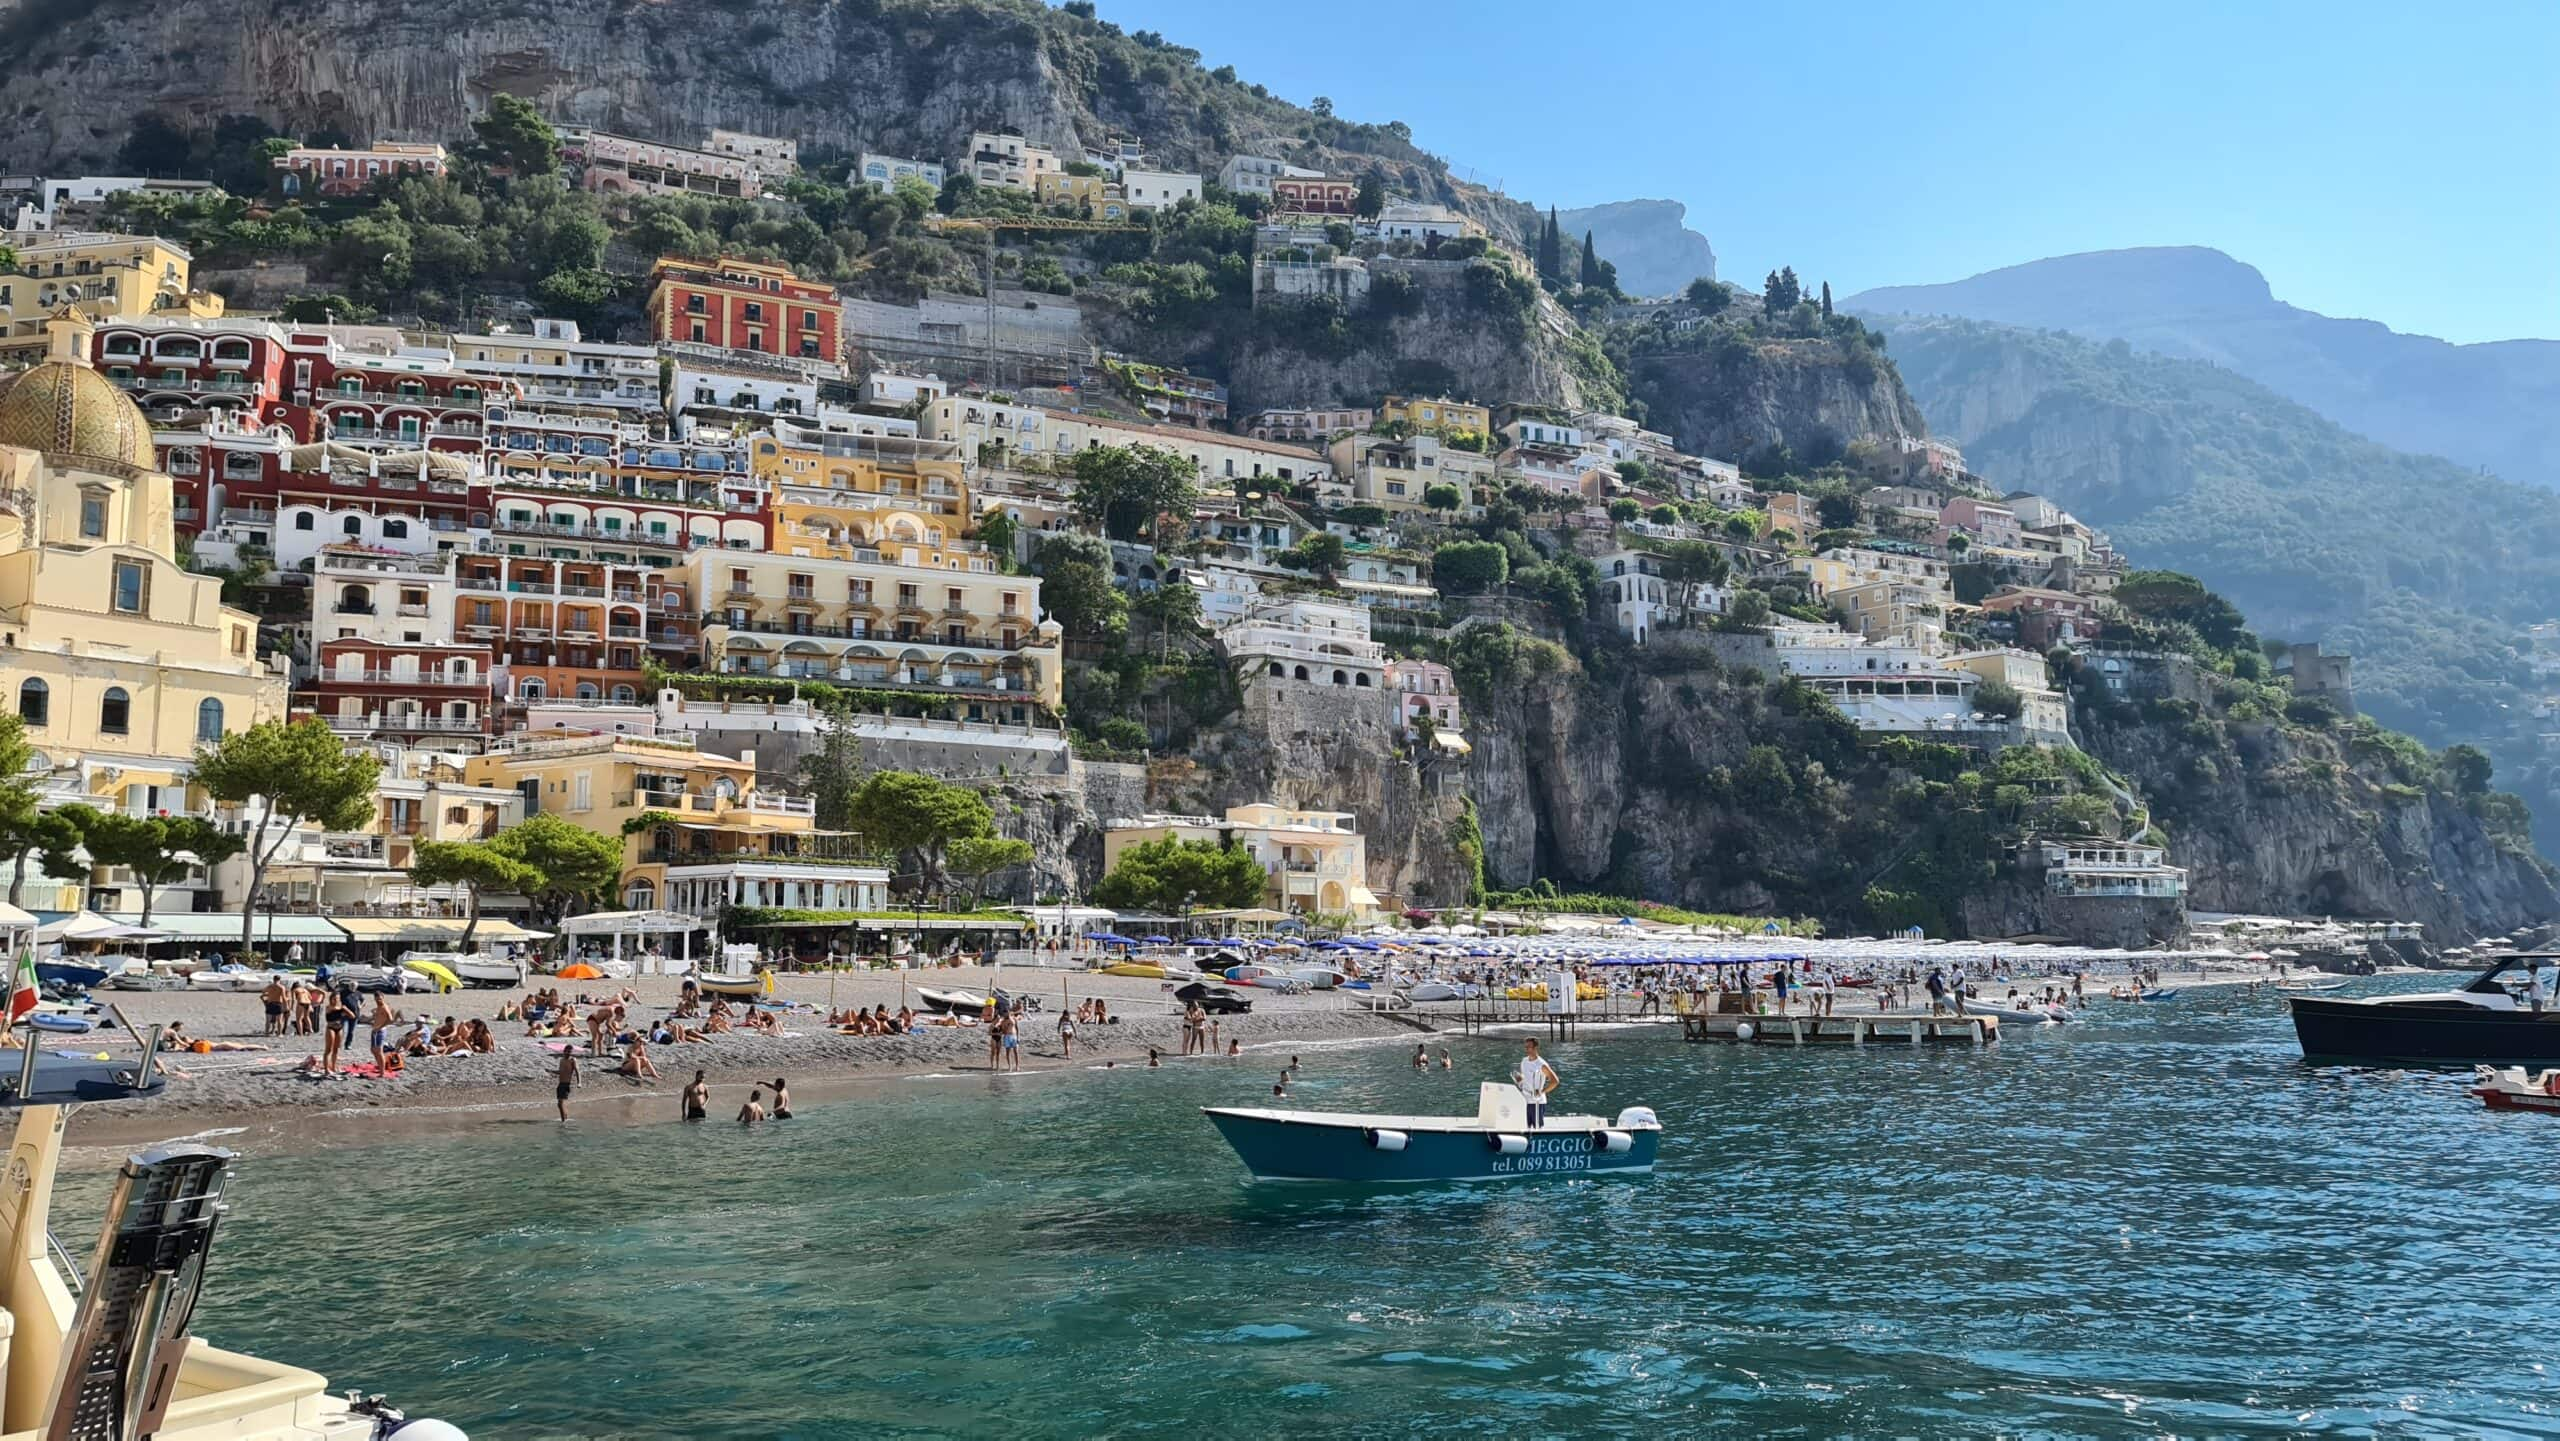 Positano Italy: 10 unforgettable Things to do in Positano & Positano beach 13